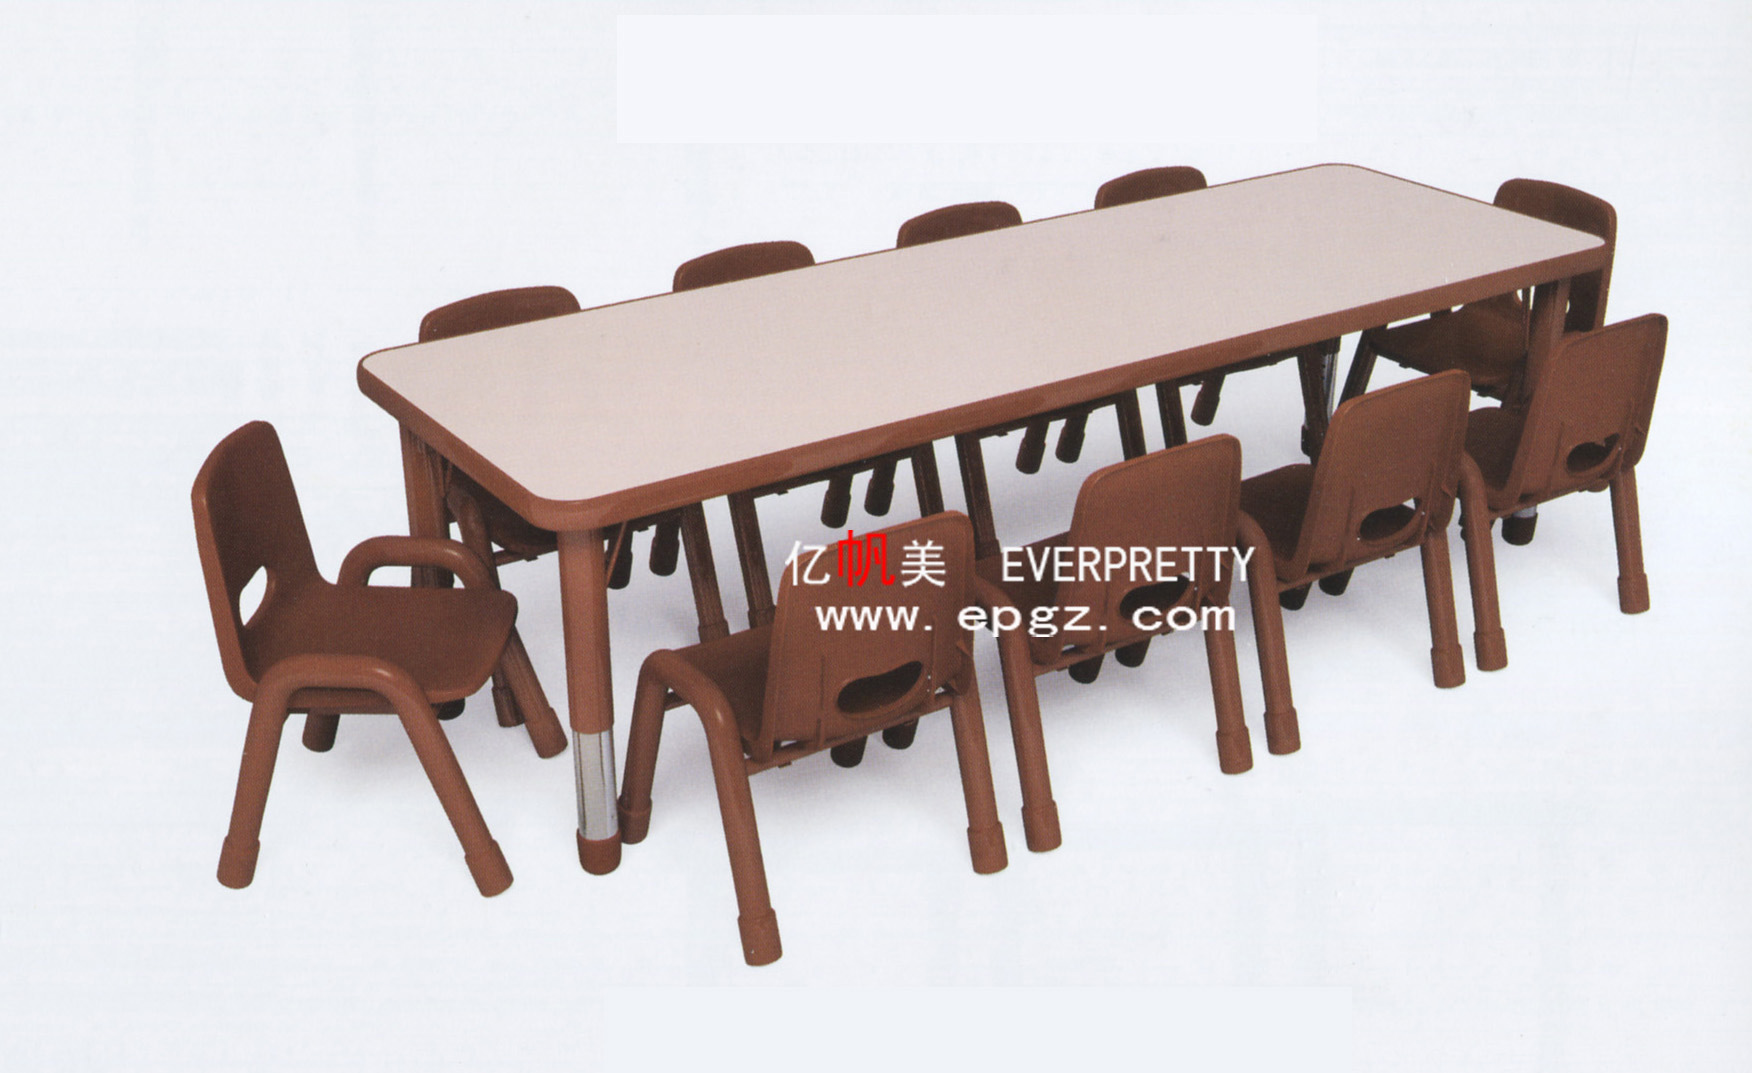 incredible shaped office desk chairandsofaclub. Preschool Table. China Daycare Desk Chair,Kids Chair,Preschool Furniture Set (SF Incredible Shaped Office Chairandsofaclub